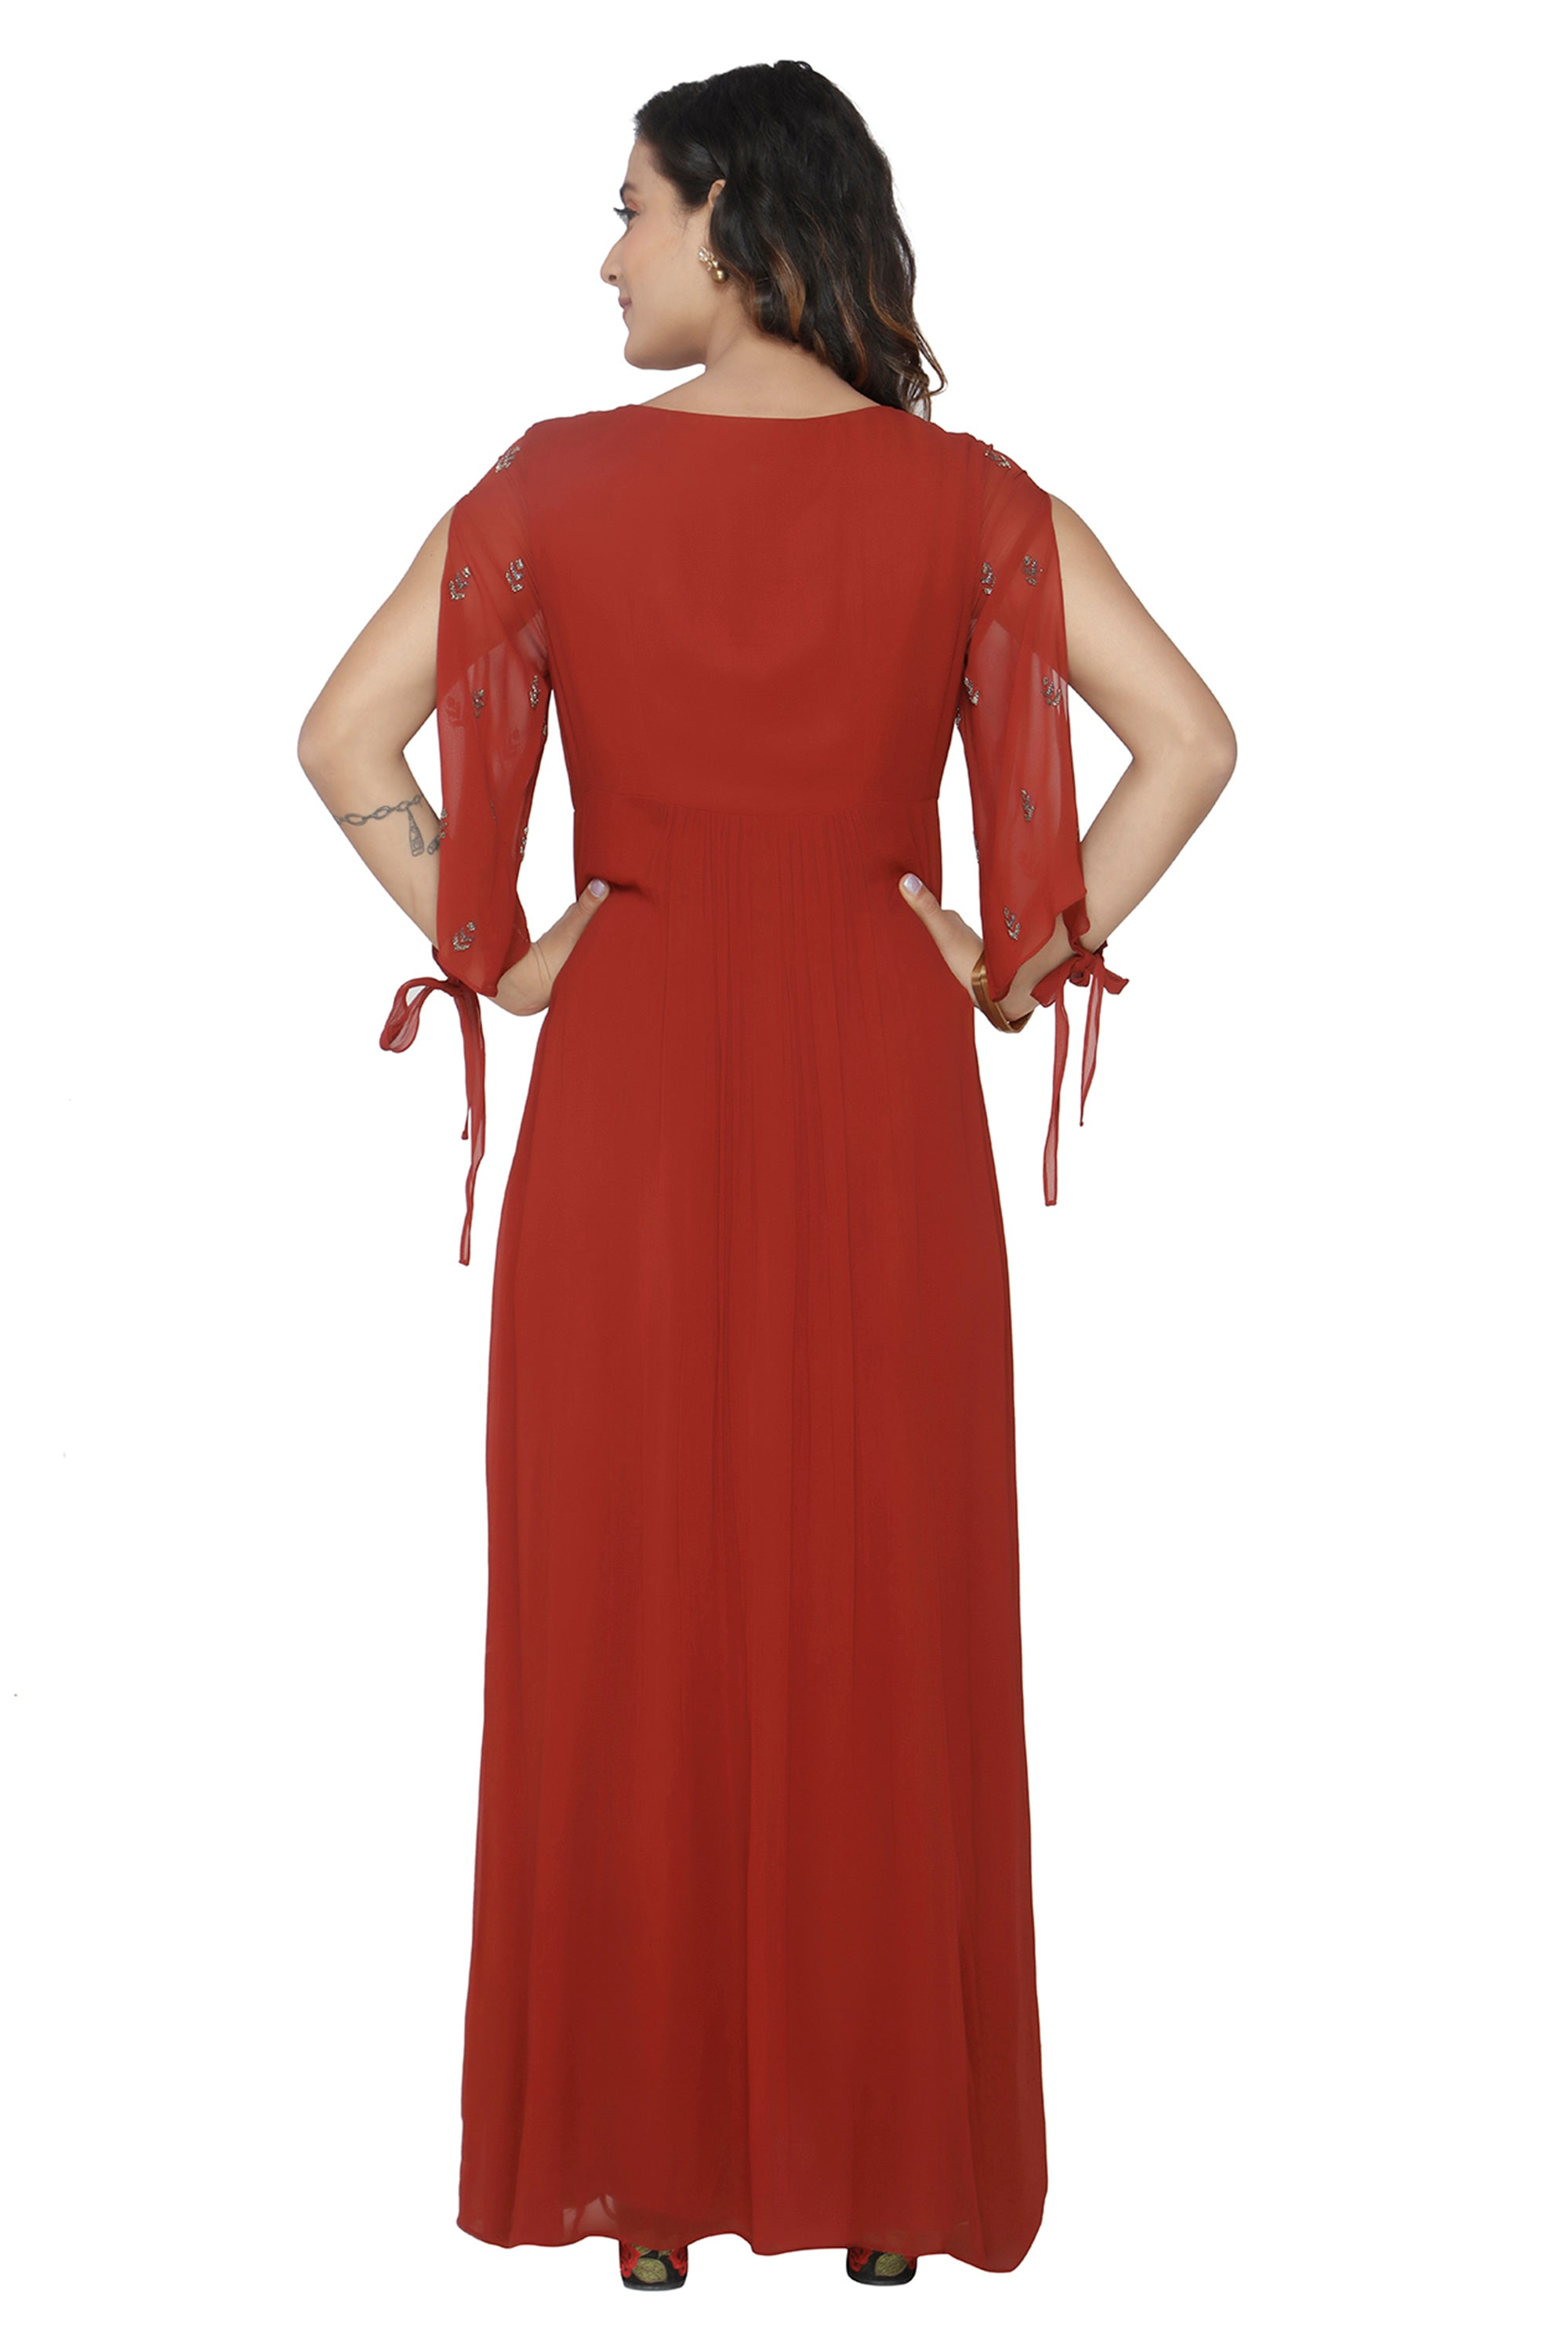 Maroon Gown With Flared Sleeves BACK